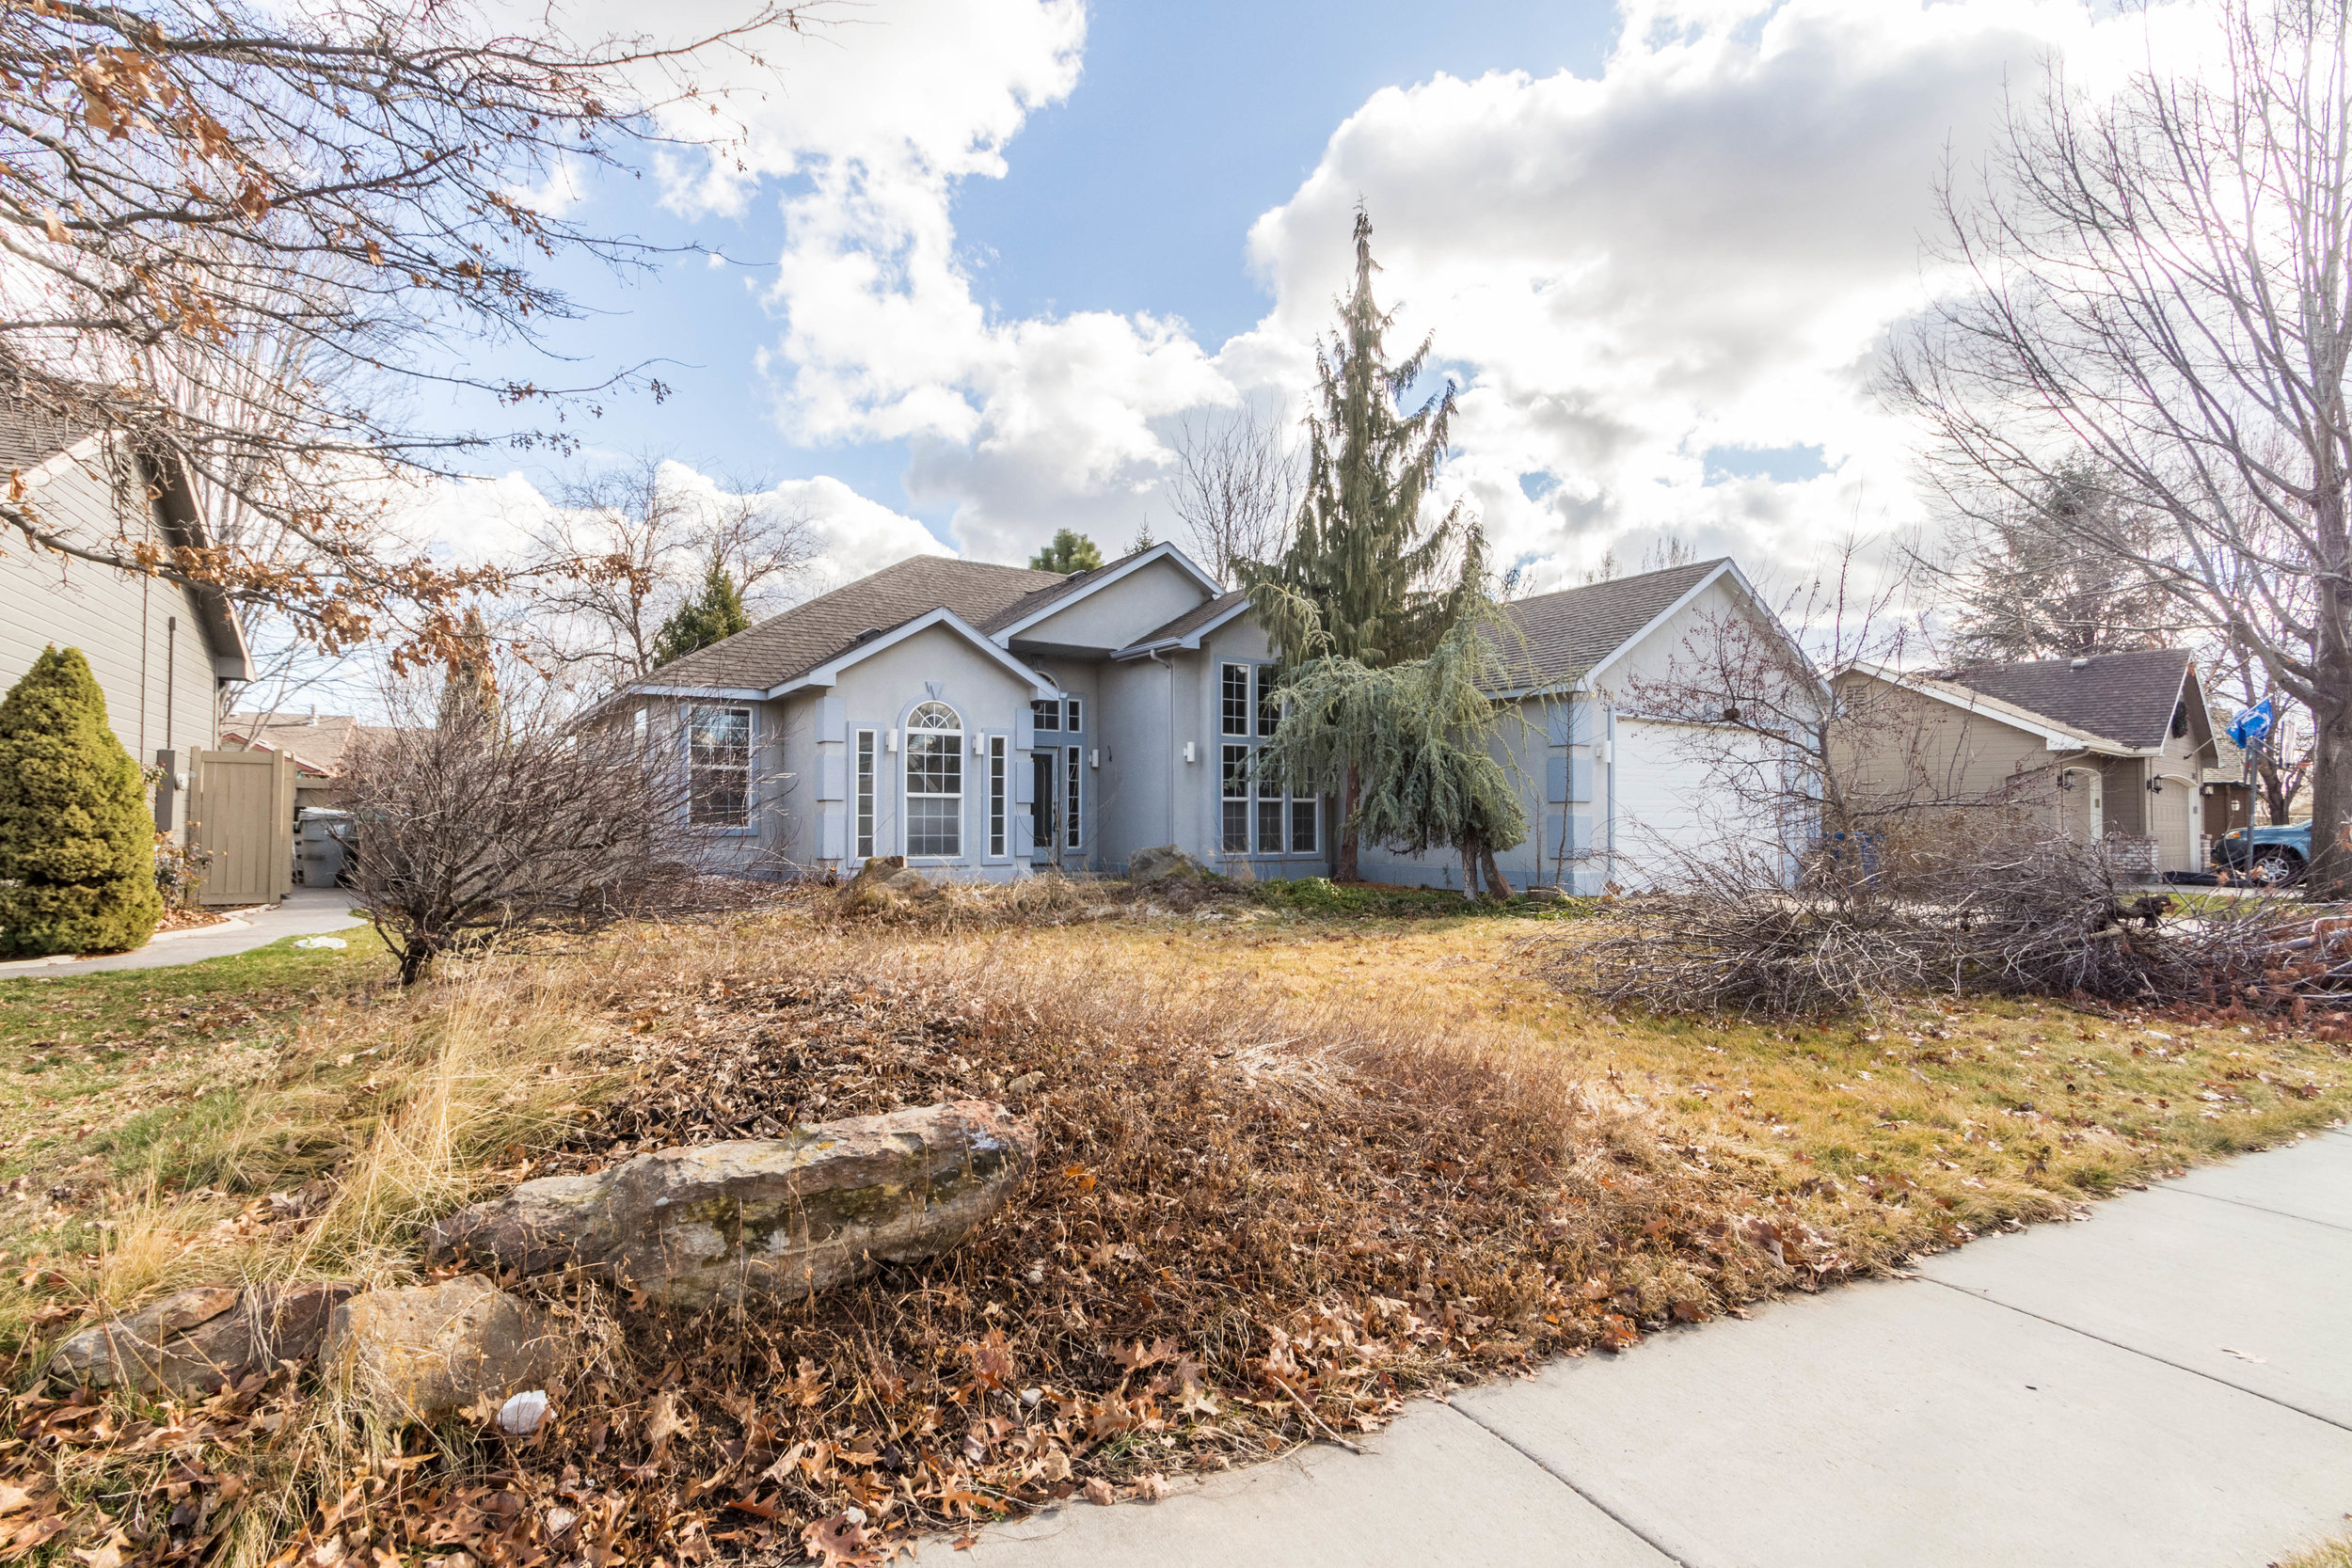 Investor Special Purchased for $100,000 UNDER market value